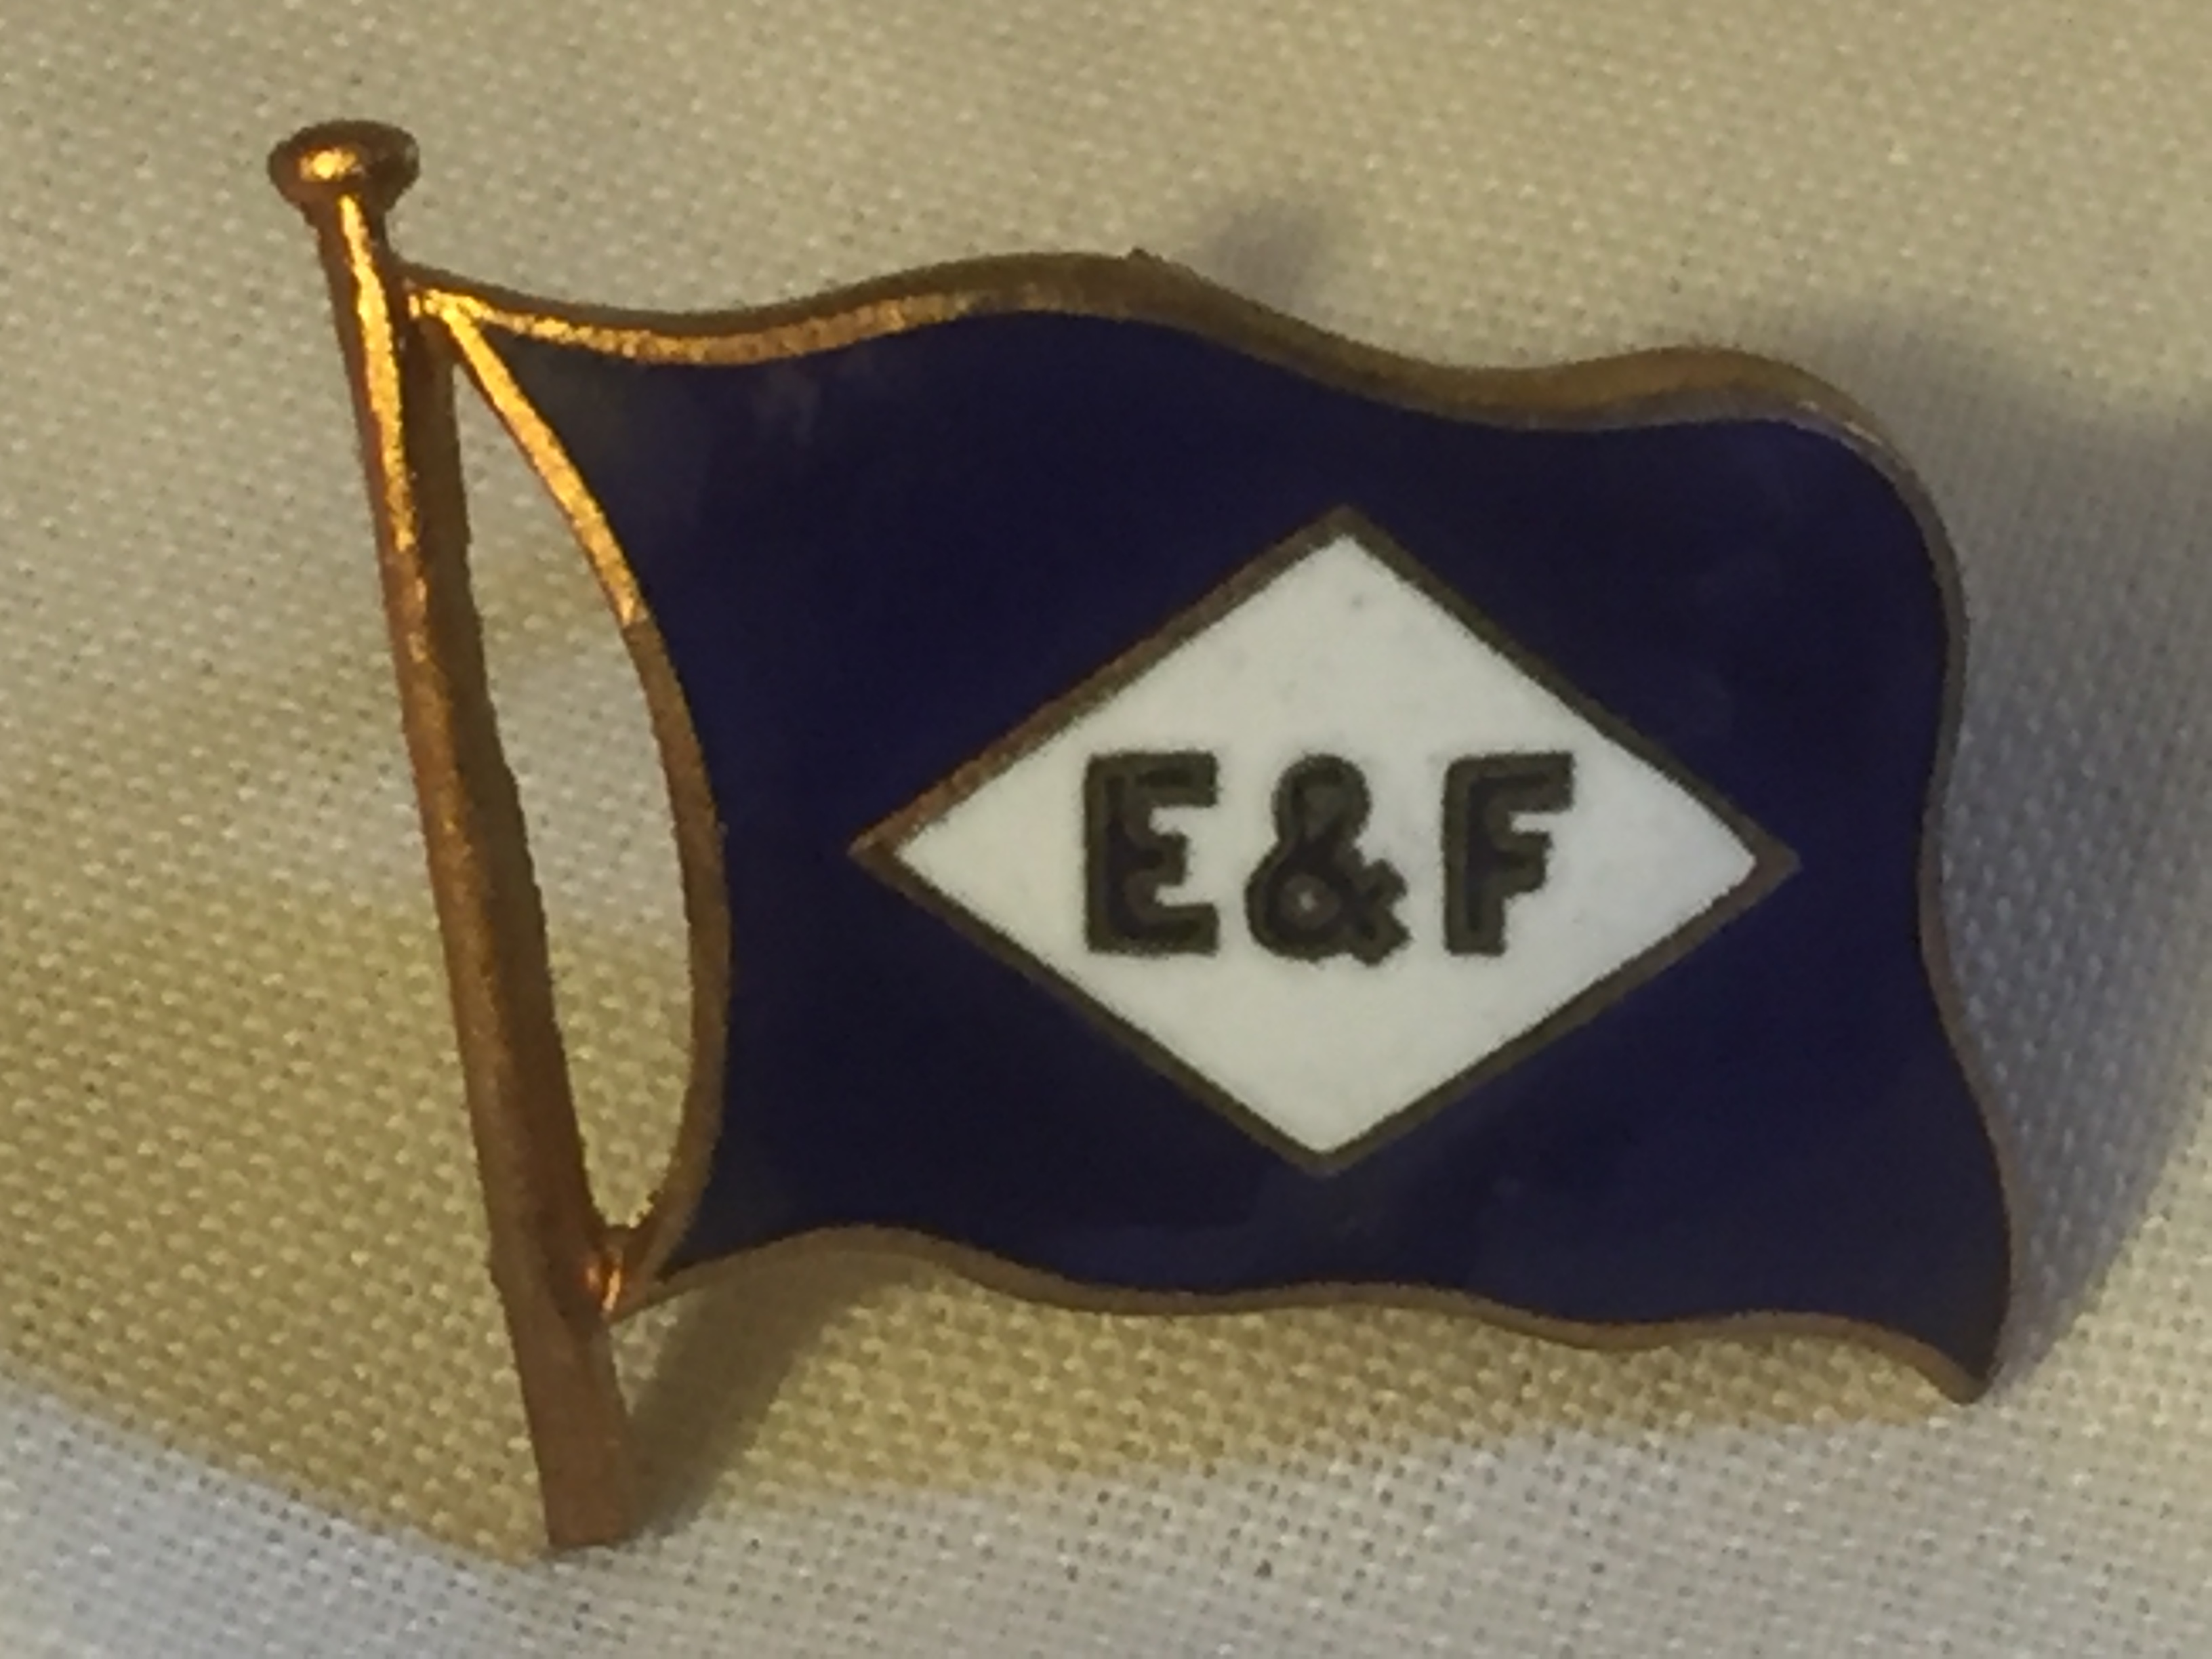 EARLY TYPE LAPEL PIN BADGE FROM THE ELDERS AND FYFES LINE